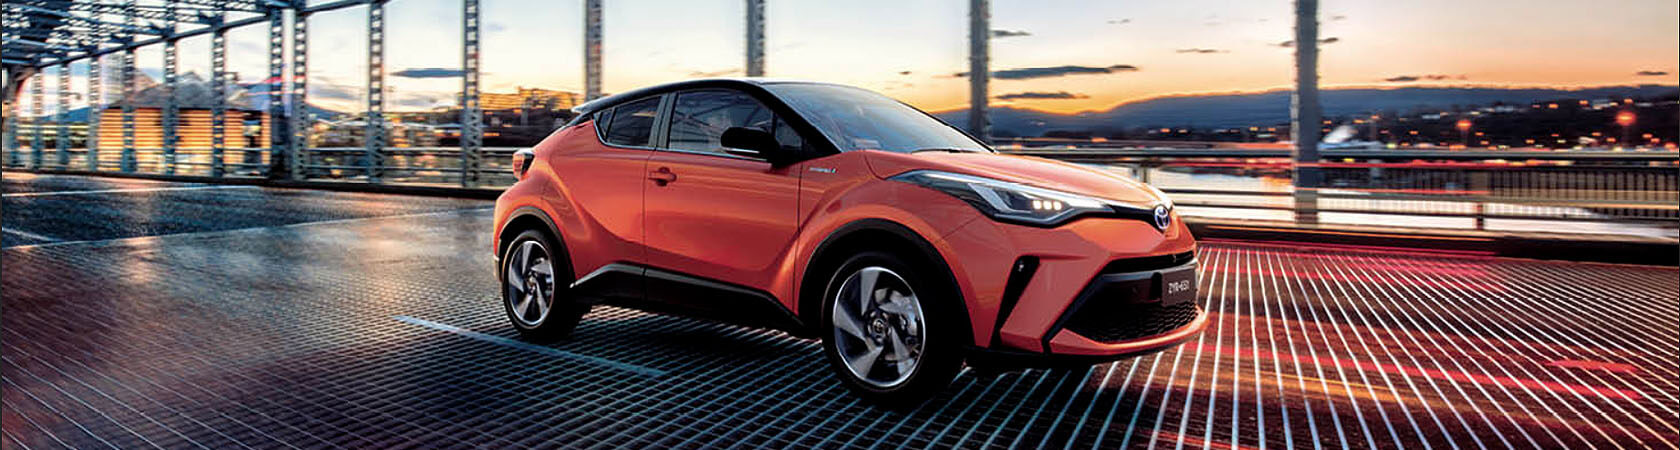 Sydney City Toyota C-HR